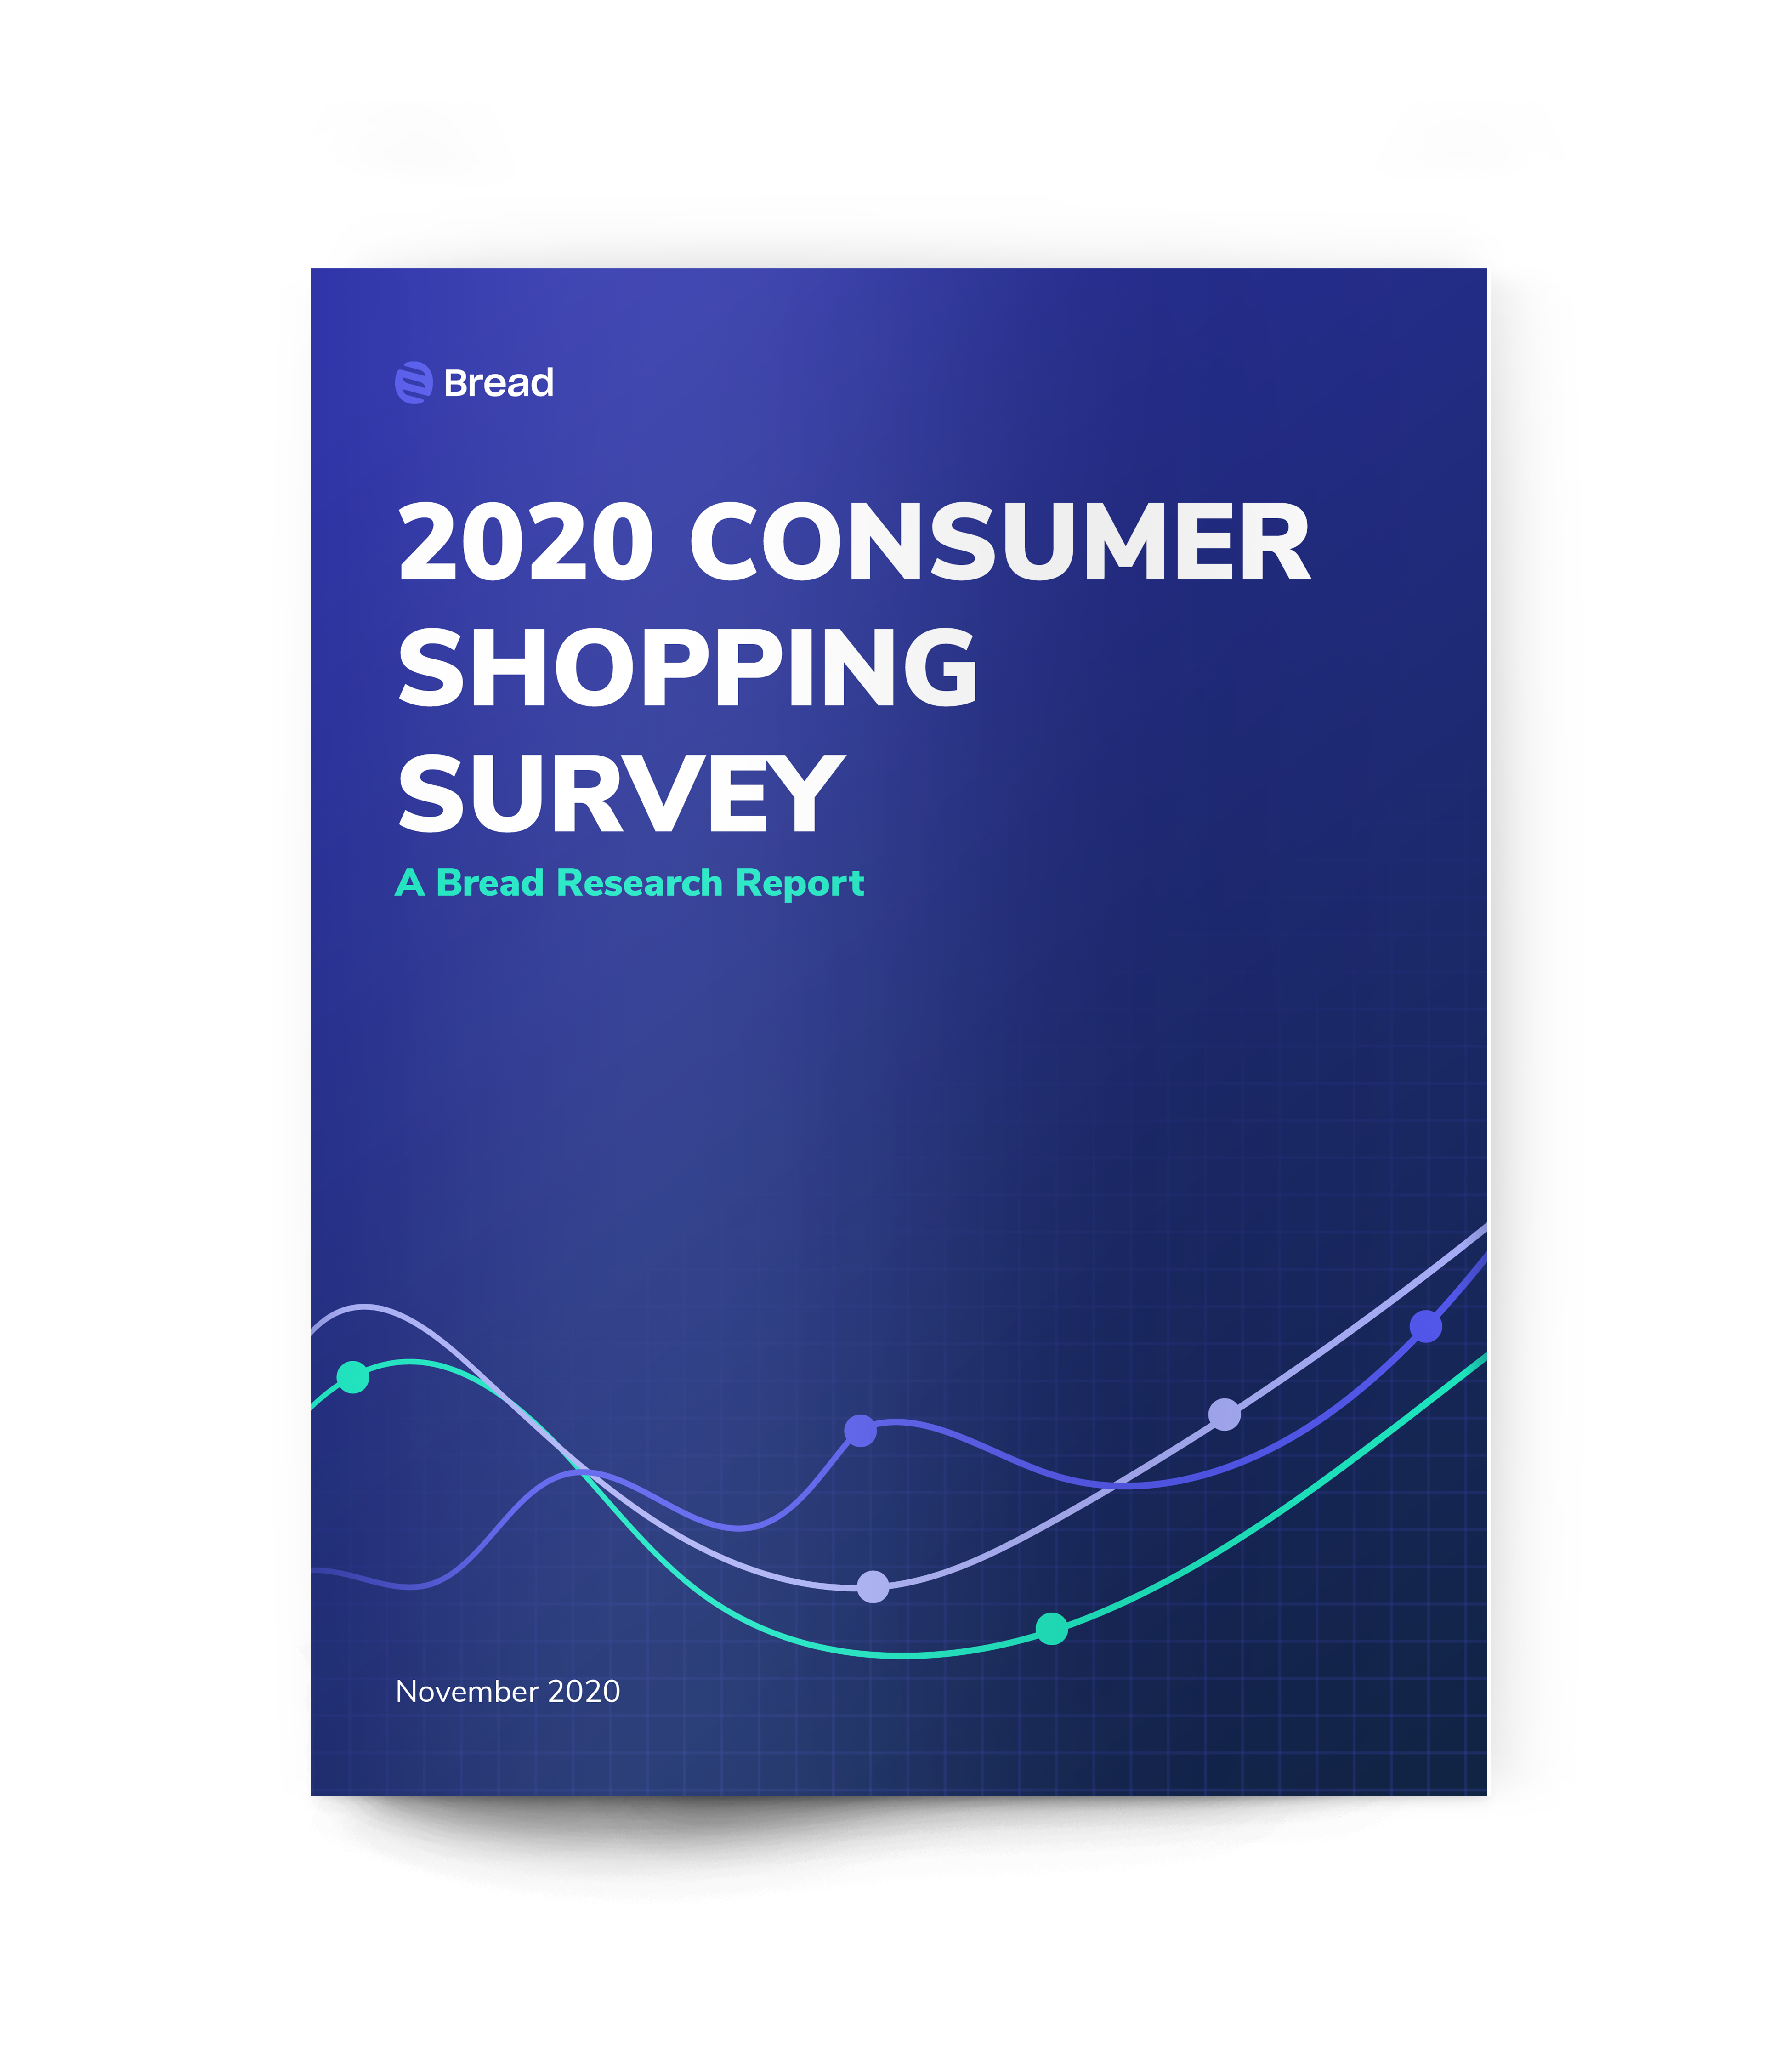 2020 Consumer Shopping Survey: A Bread Research Report